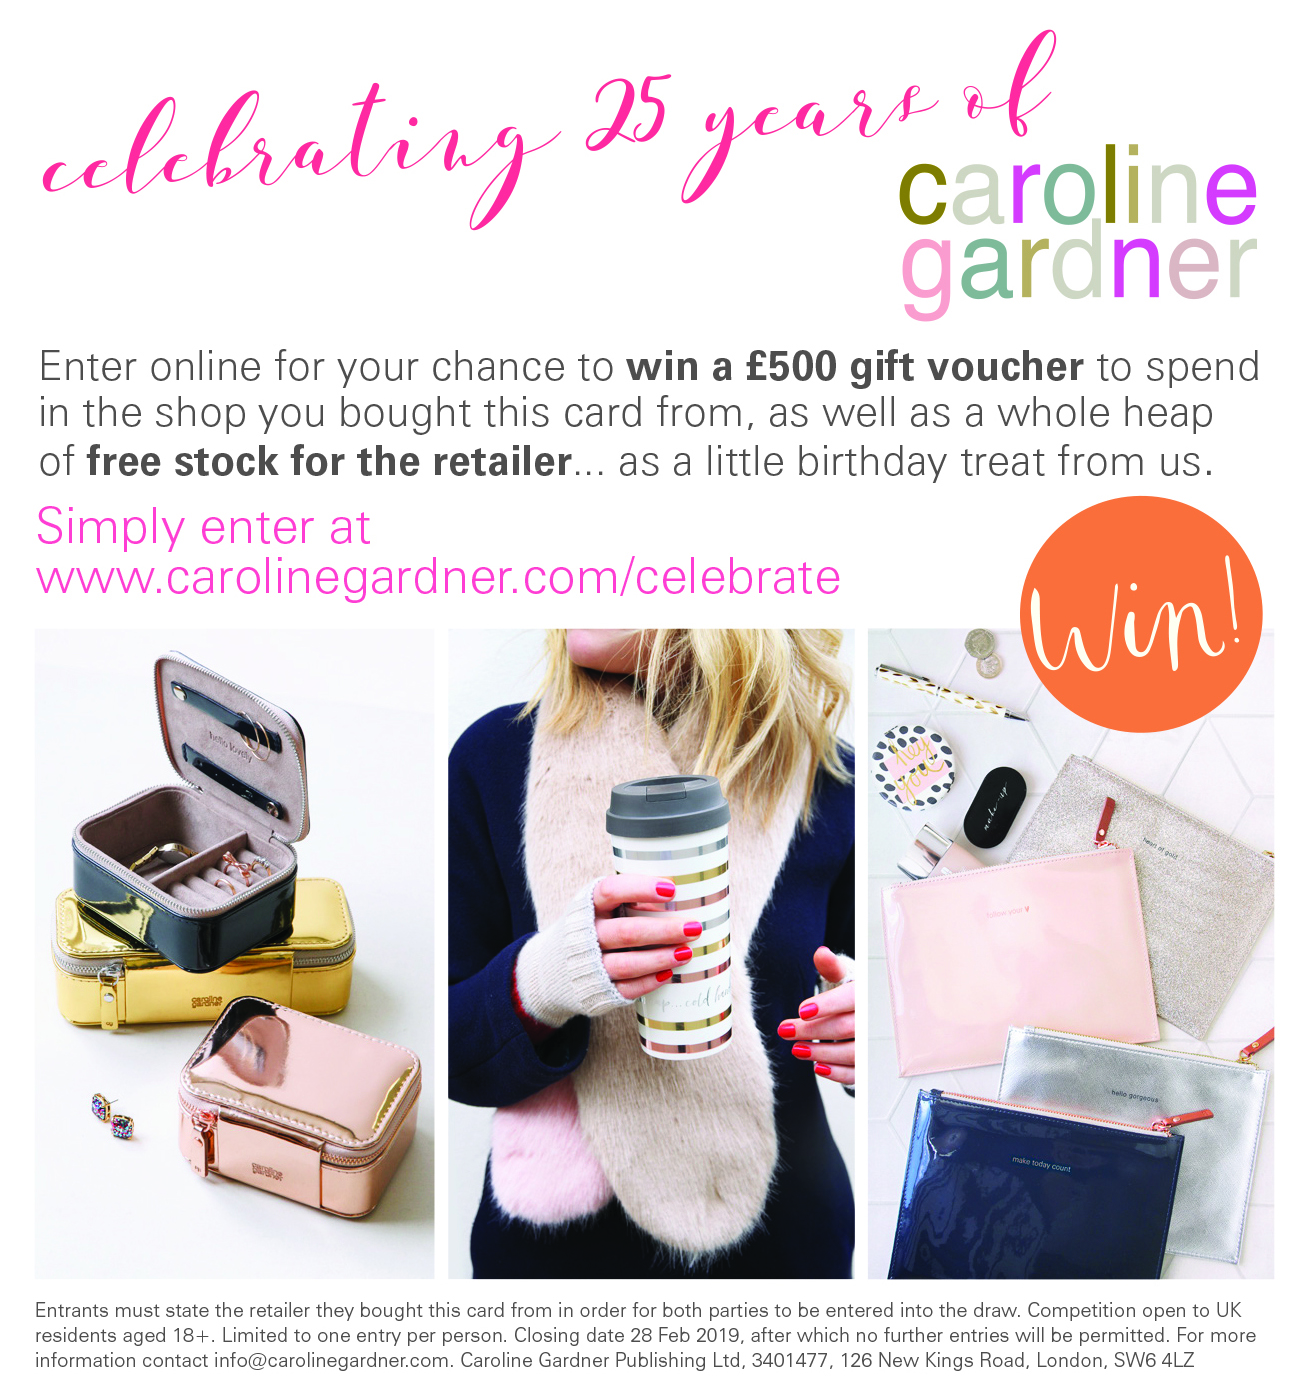 Above: The Caroline Gardner competition offered £800 in prizes.